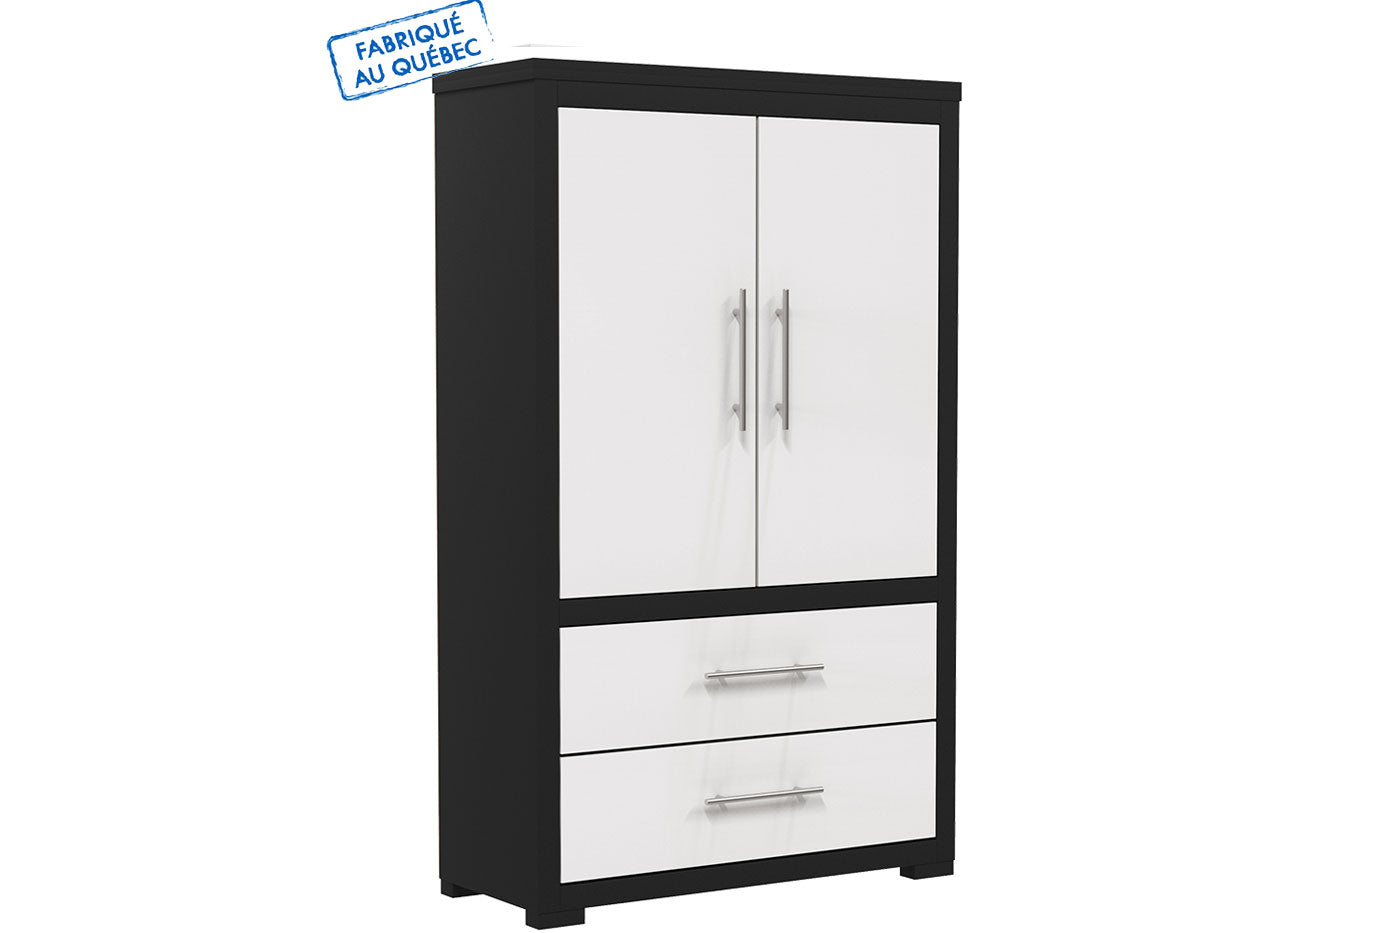 Barton wardrobe in wooden finish - Java and white